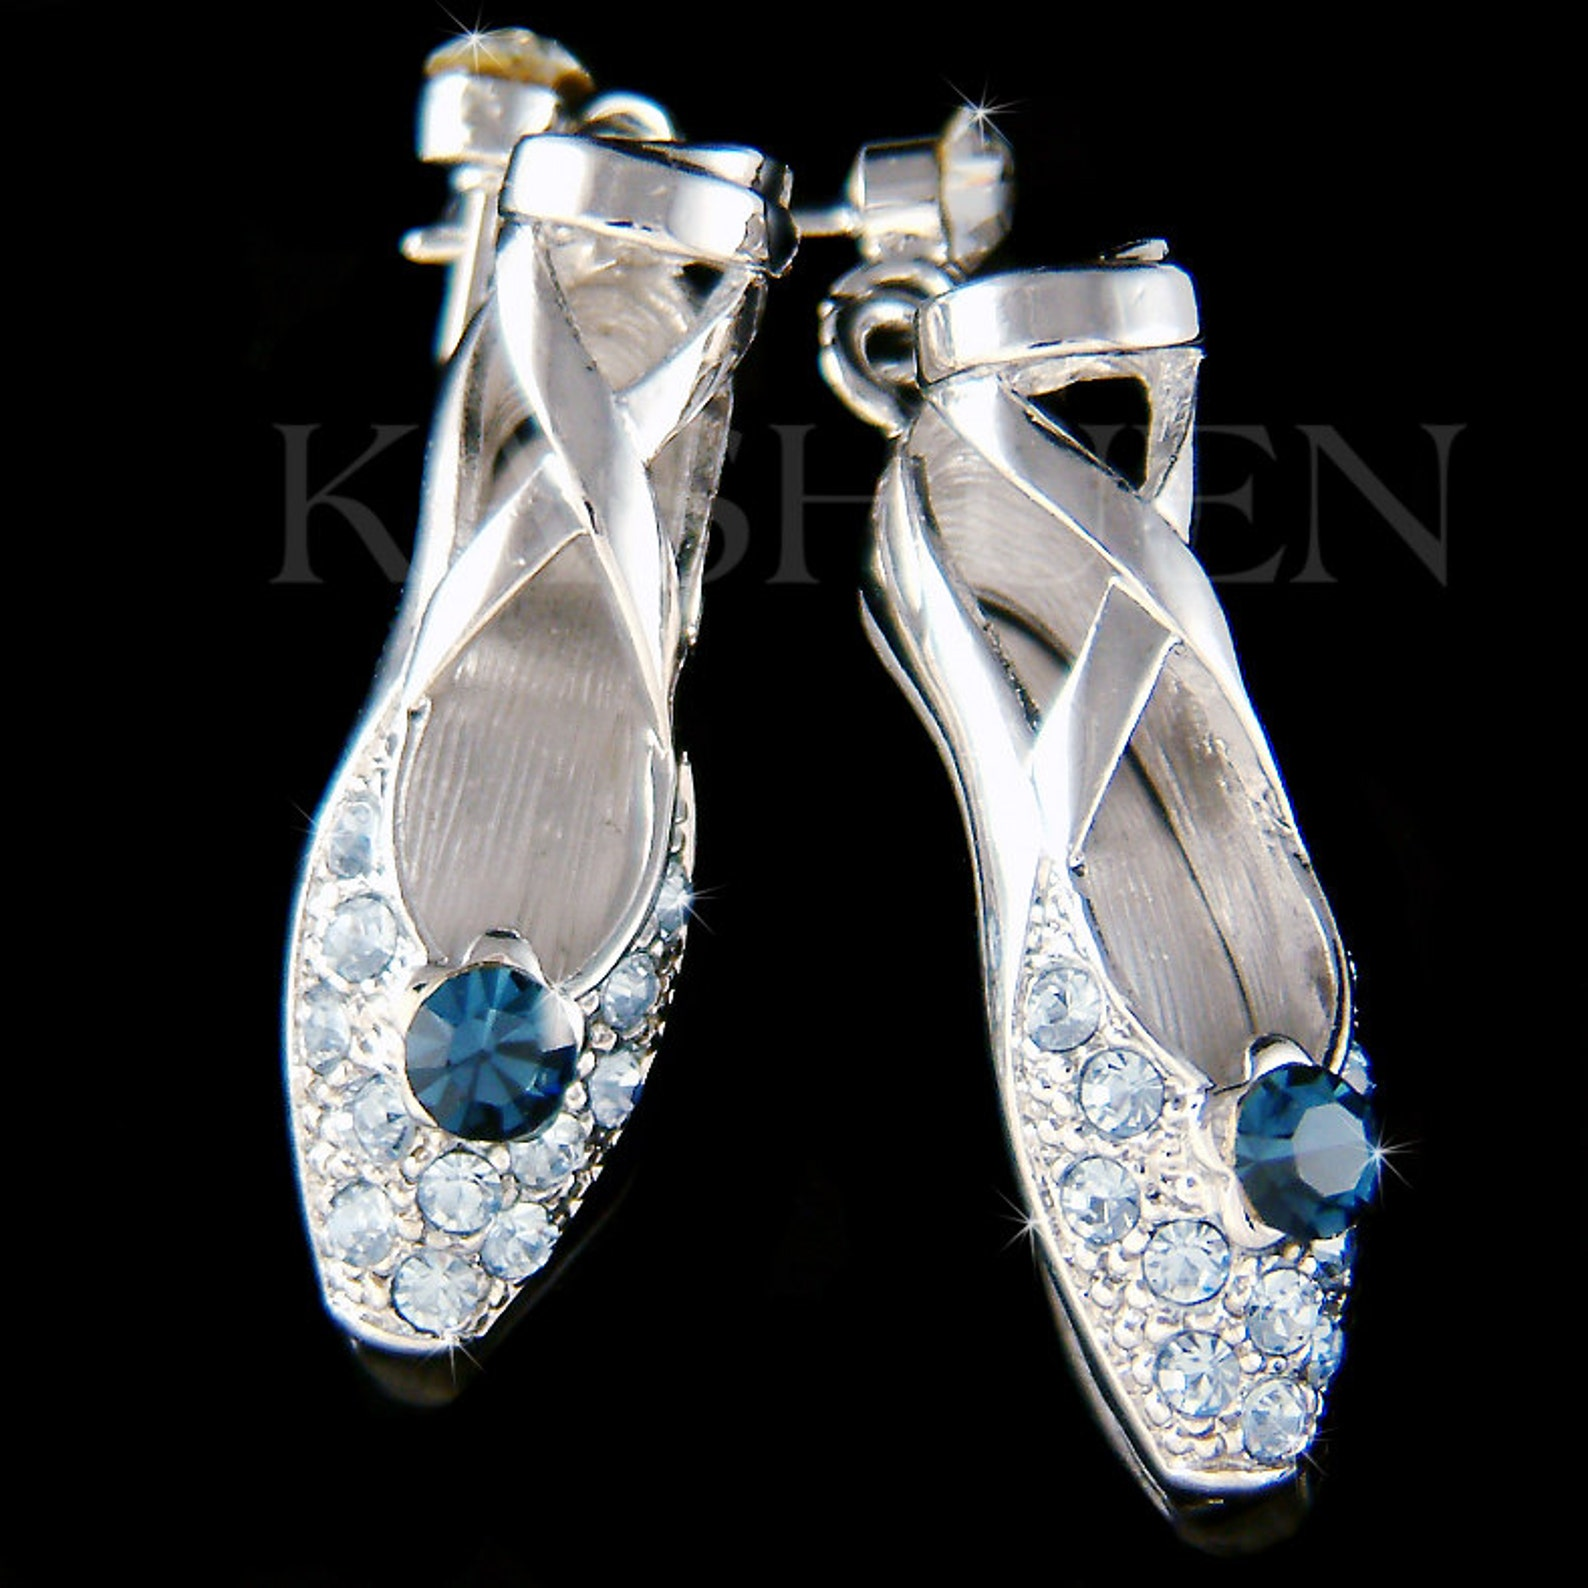 swarovski crystal blue ballerina shoes slippers ballet dance stick earrings jewelry christmas gift new for the nutcracker swan l